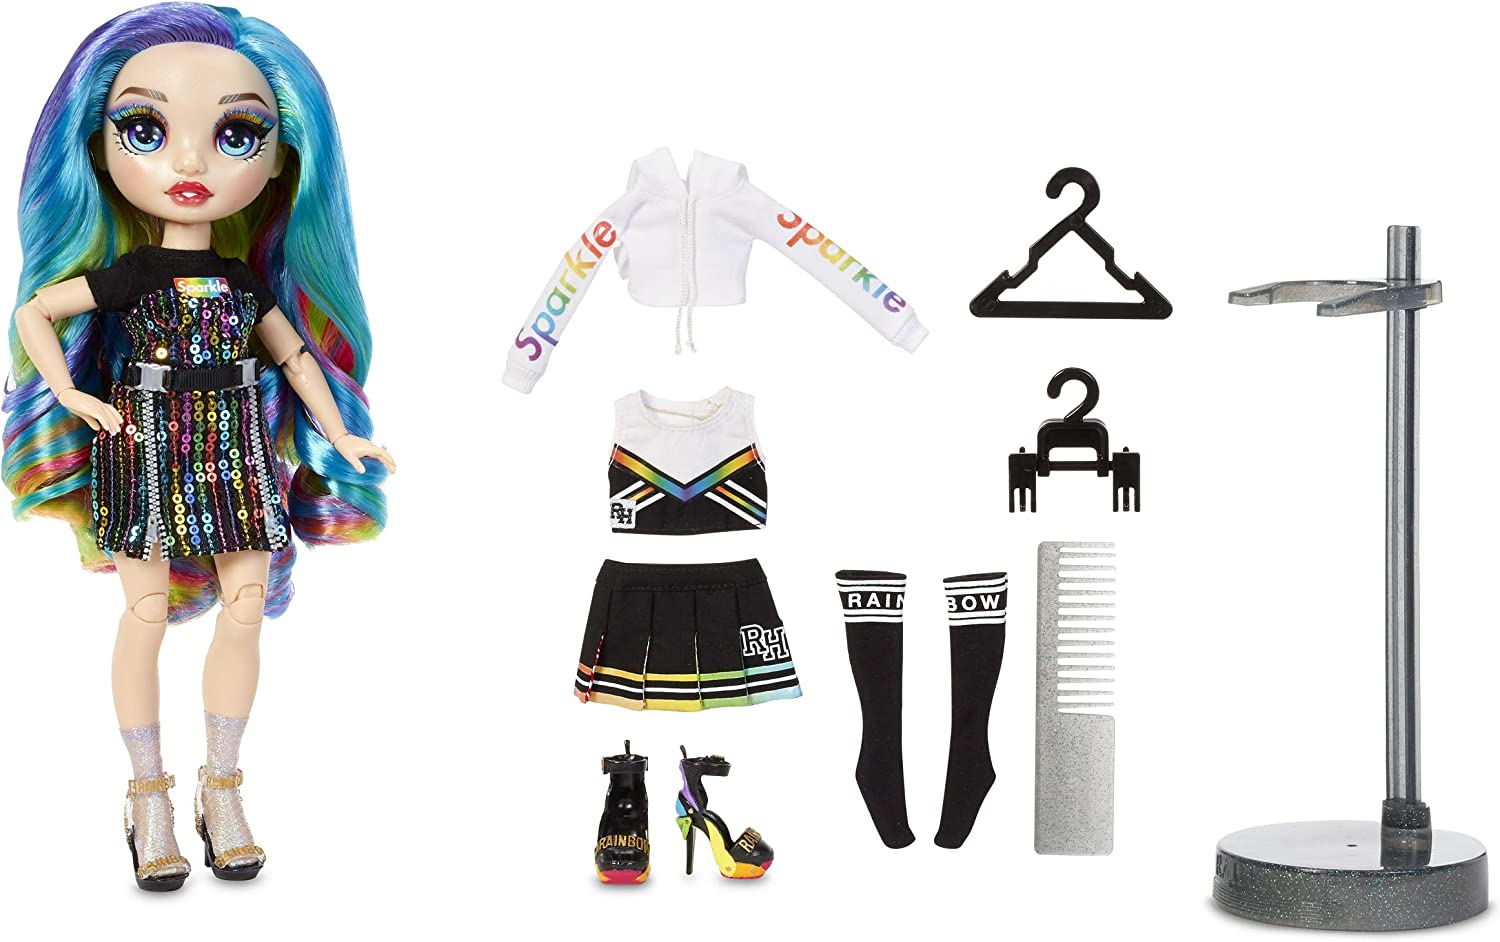 Rainbow High Amaya Raine – Rainbow Fashion Doll with 2 Complete Doll Outfits to Mix & Match and Doll Accessories, Great Gift for Kids 6-12 Years Old